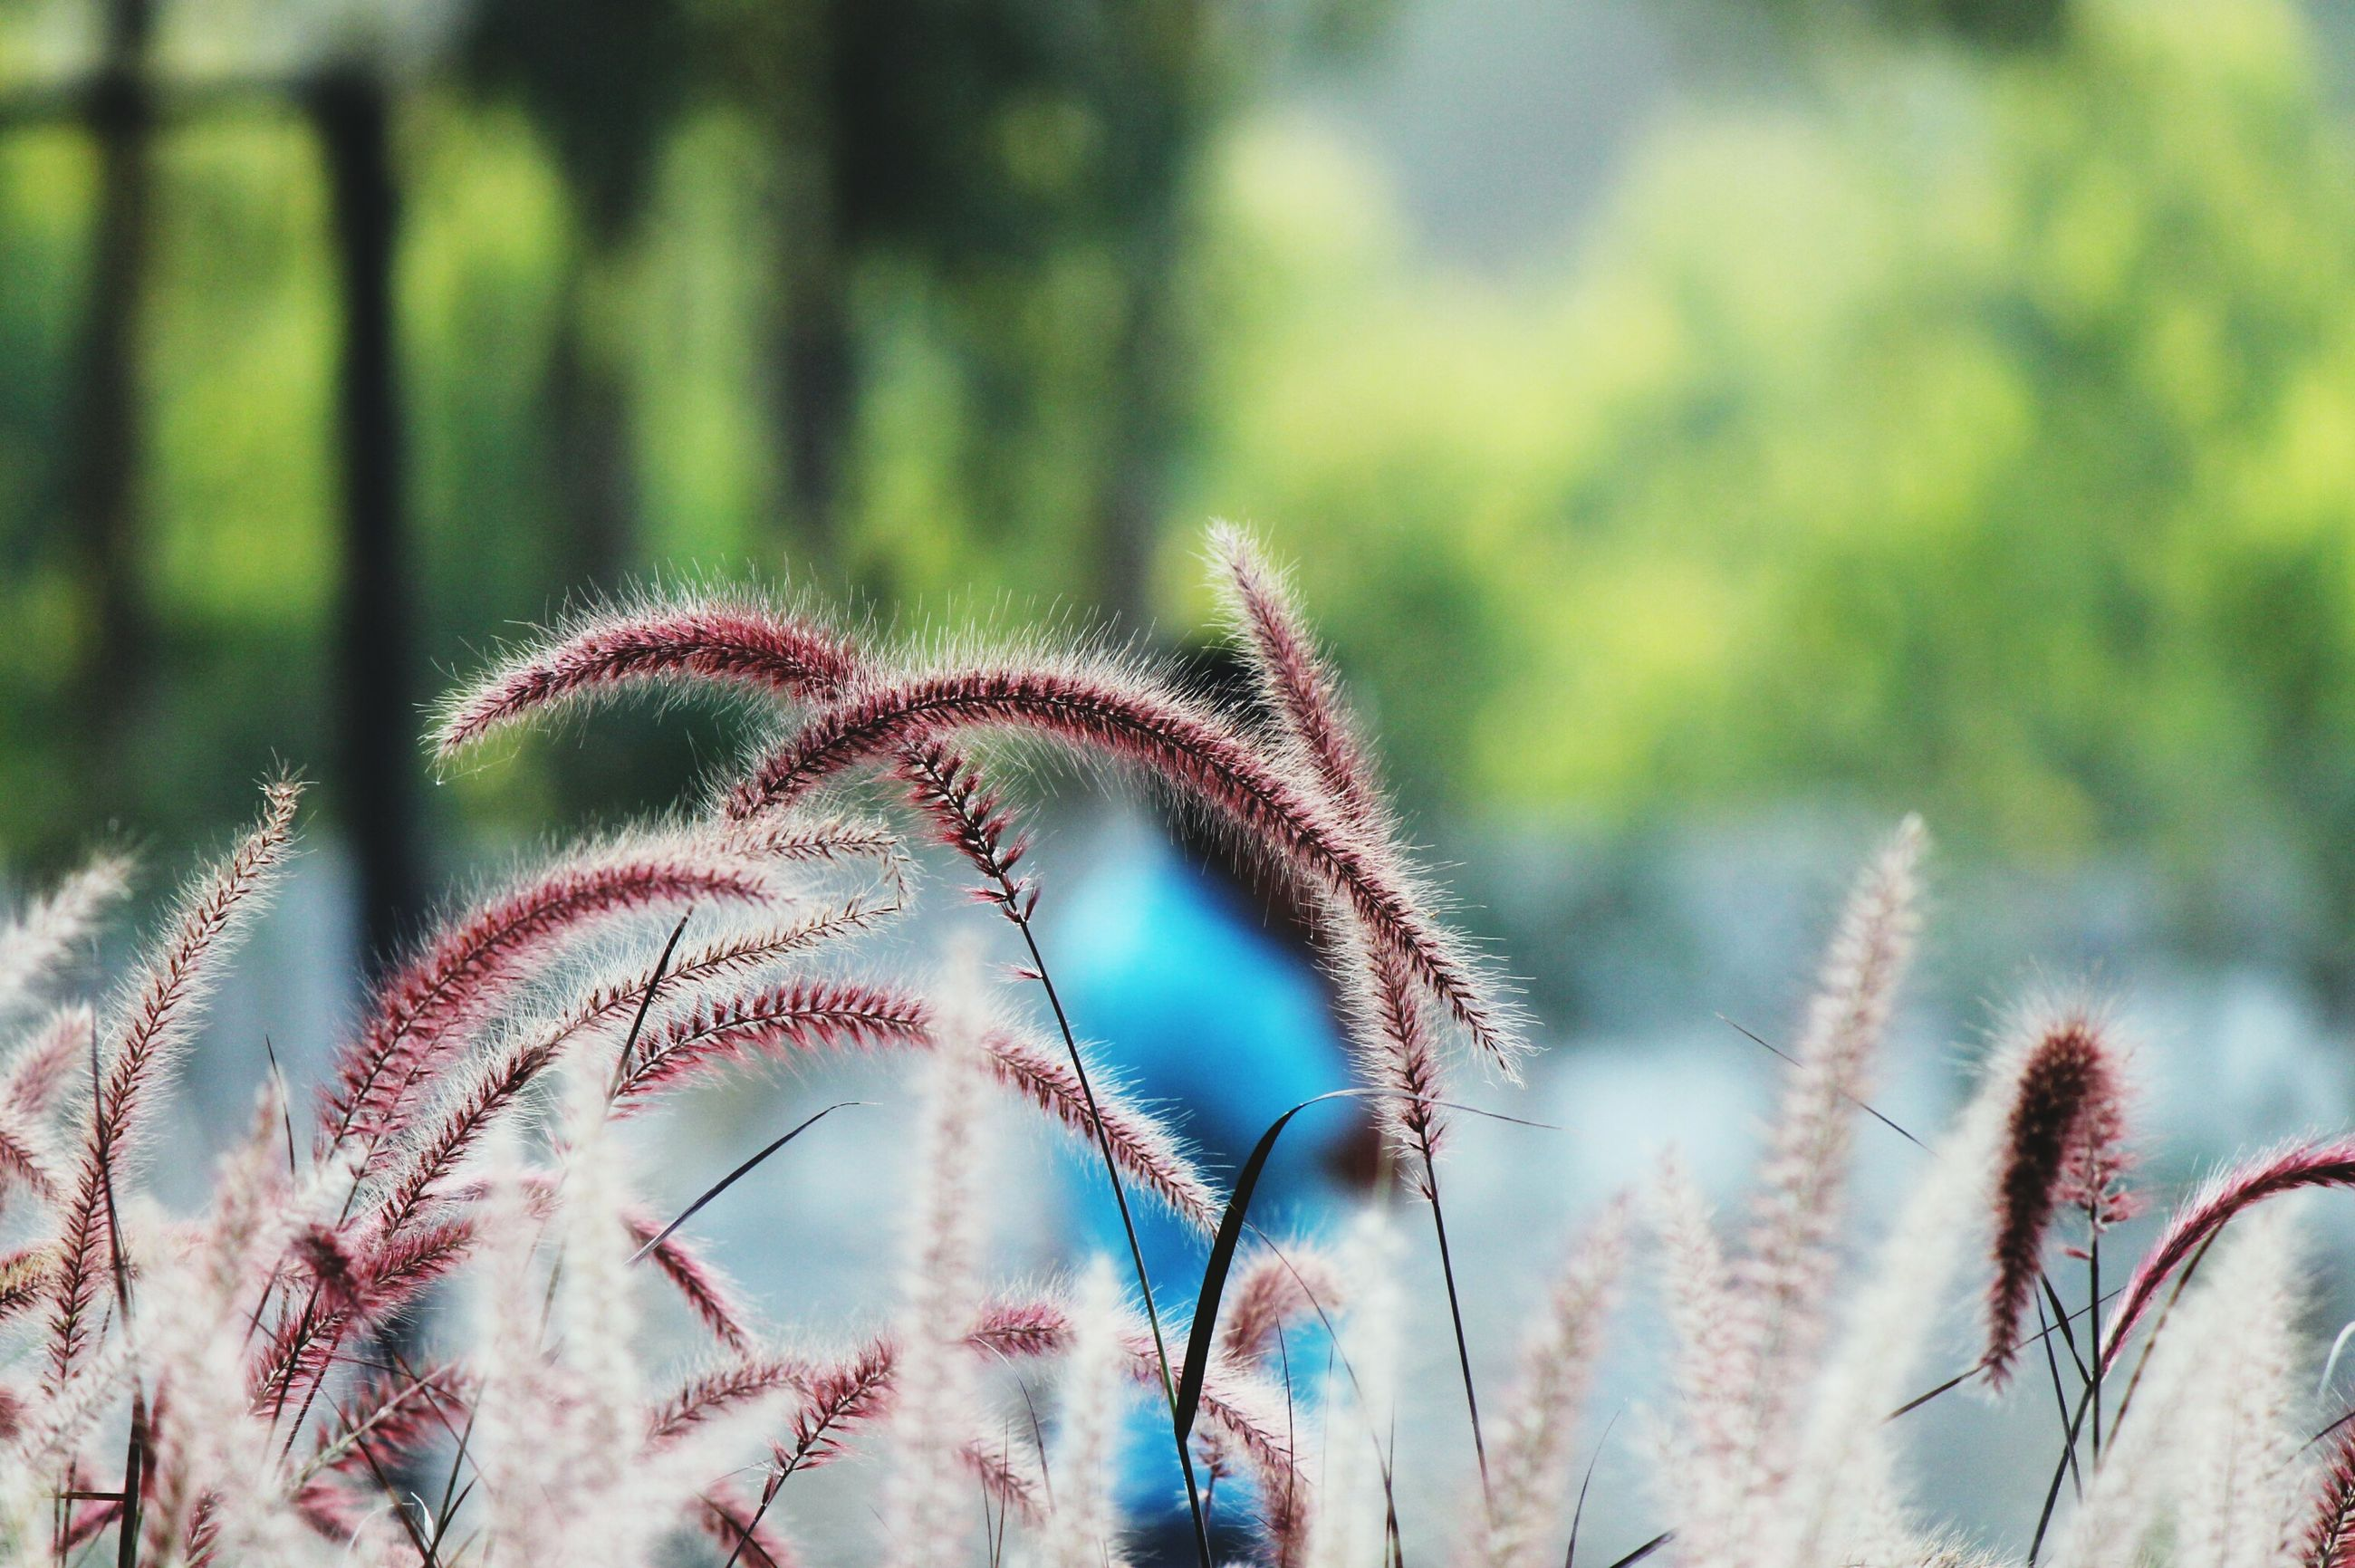 focus on foreground, close-up, growth, plant, nature, spiked, beauty in nature, selective focus, outdoors, day, thorn, cactus, no people, sharp, growing, field, stem, tranquility, dry, fragility